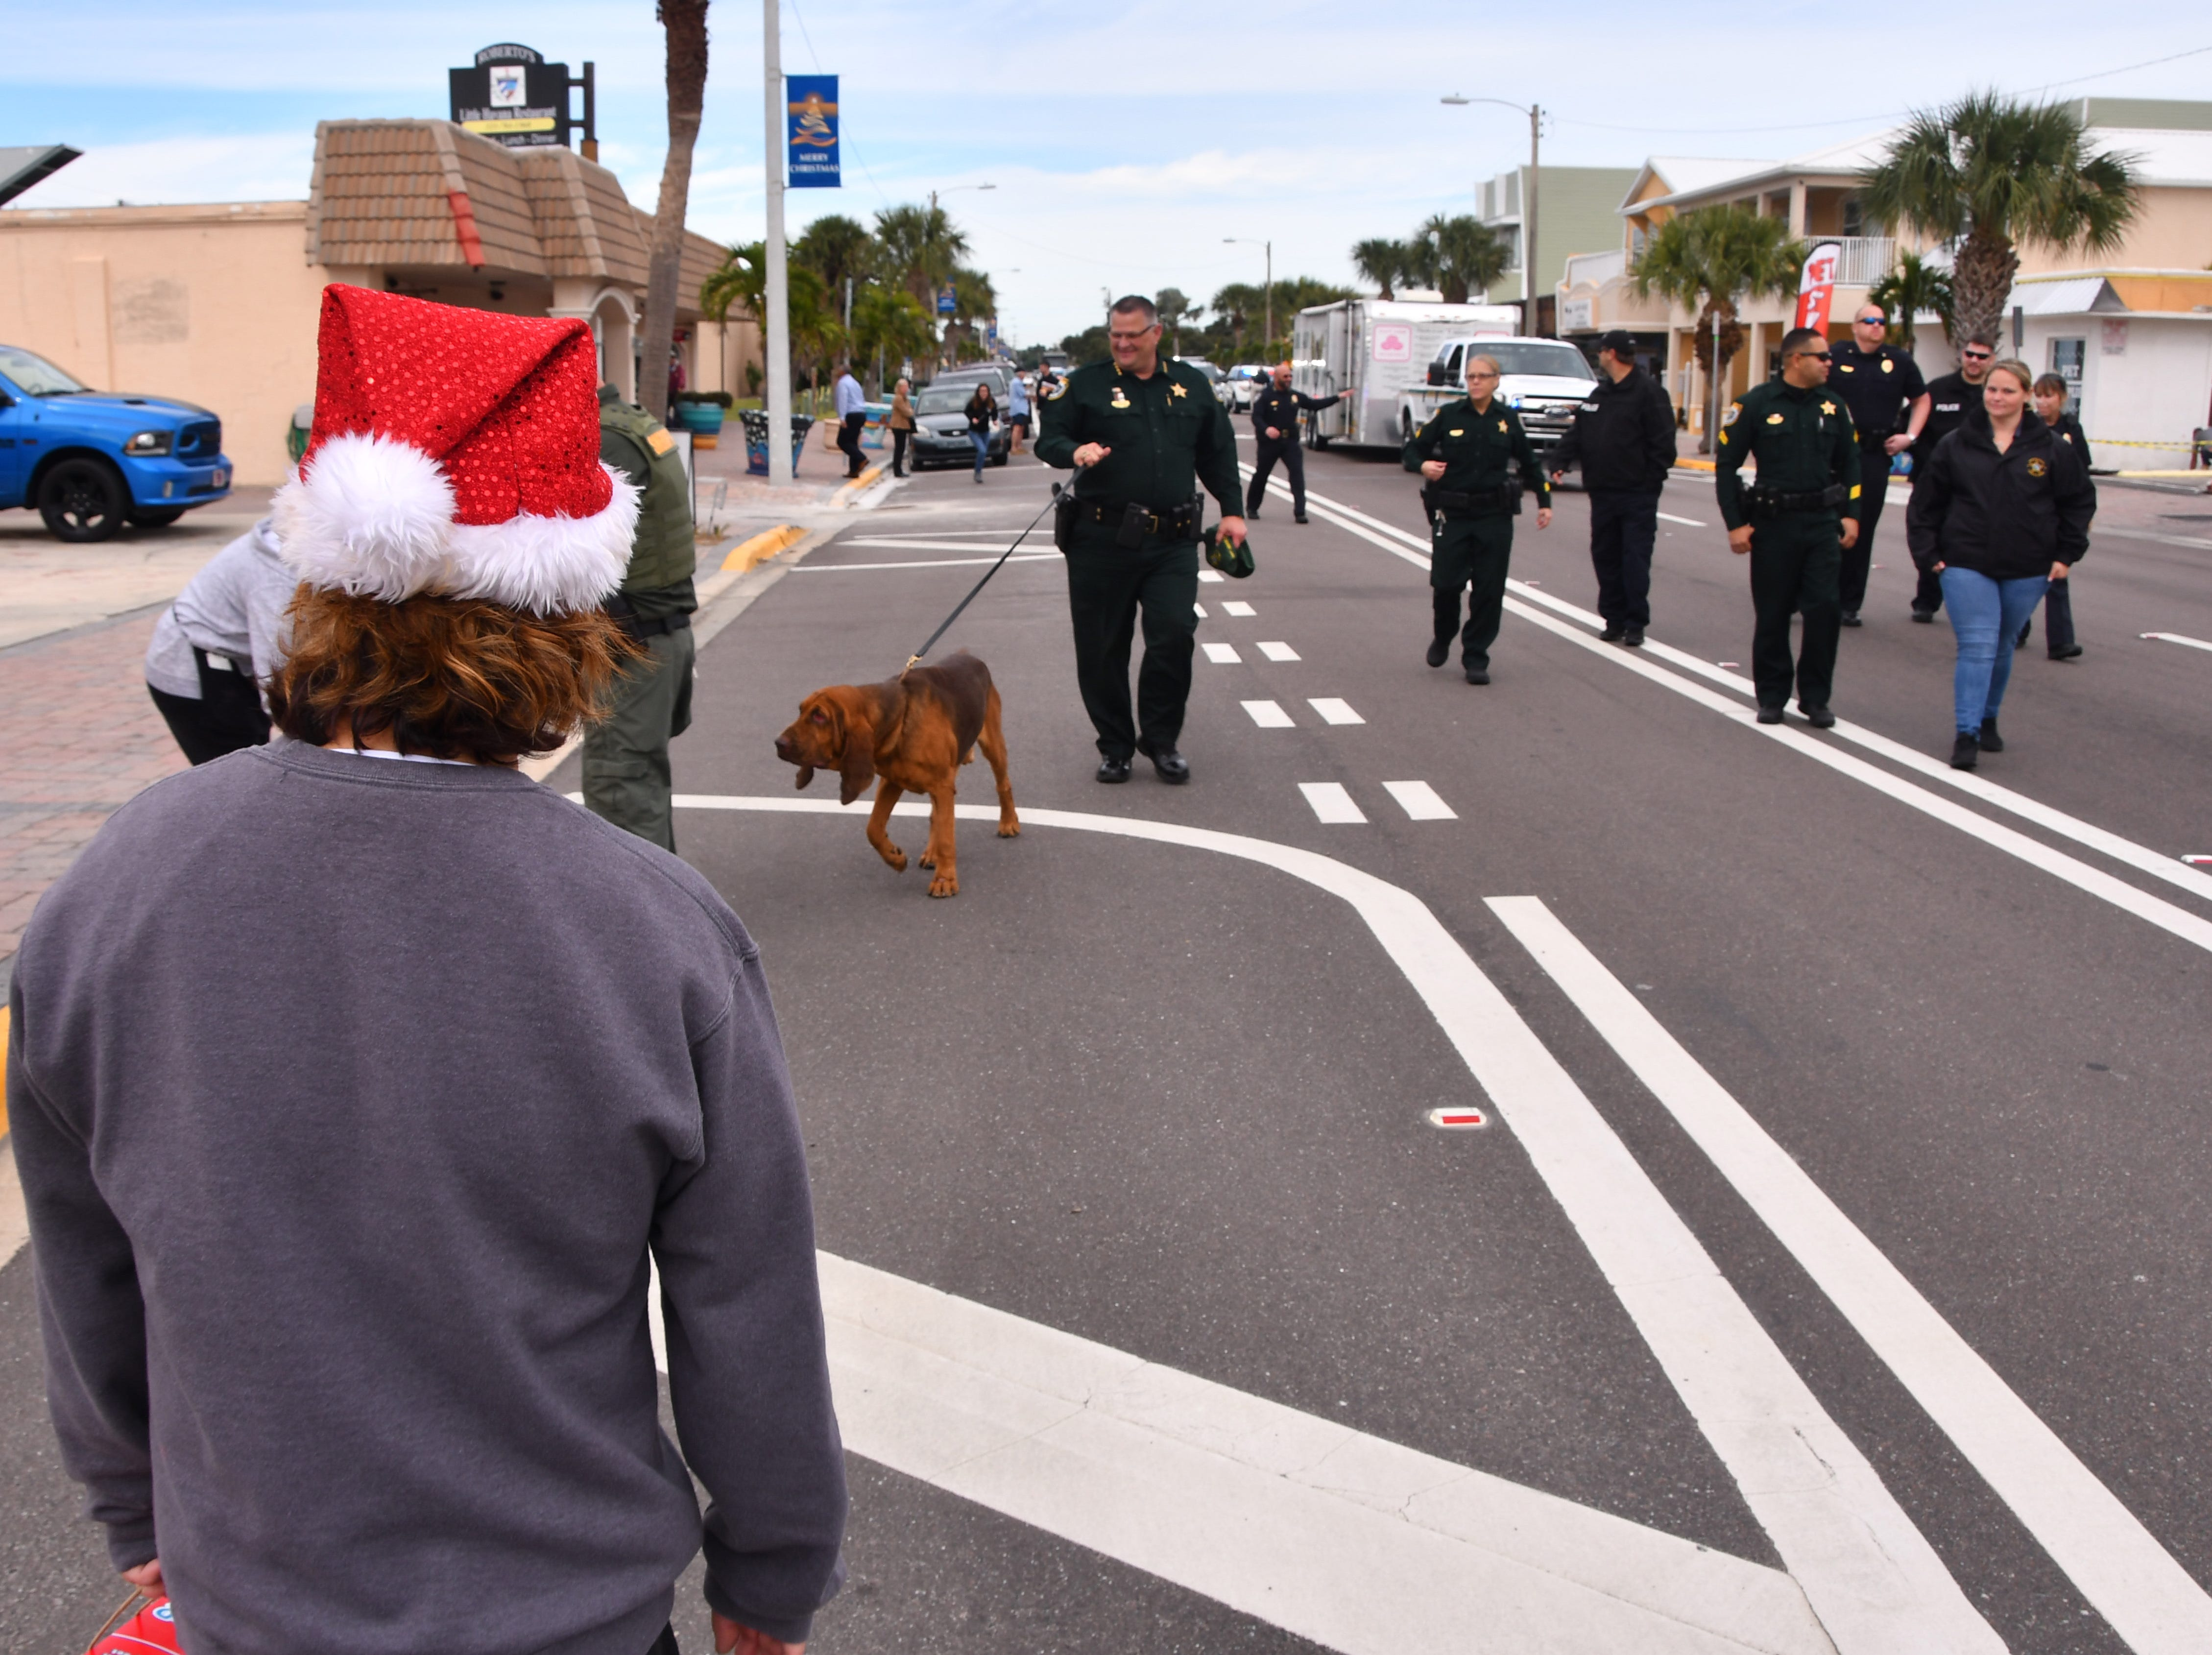 Brevard County Sheriff Wayne Ivey, Cocoa Beach Police Chief Scott  Rosenfeld and Deputy Police Chief Wes Mullins, along with other officers and deputies walked from 4th St. North  to Minutemen Causeway in Cocoa Beach collecting toys and pozing for photos. The Reverse Christmas Parade made its way through Brevard Thursday with stops in Titusville, Port St. John, Merritt Island, Cocoa Beach, Cocoa, Rockledge and Melbourne. Businesses and residents would bring unwrapped toys that were collected by the police and BCSO for needy children. People wait with toys on Orlando Ave. in Cocoa Beach.